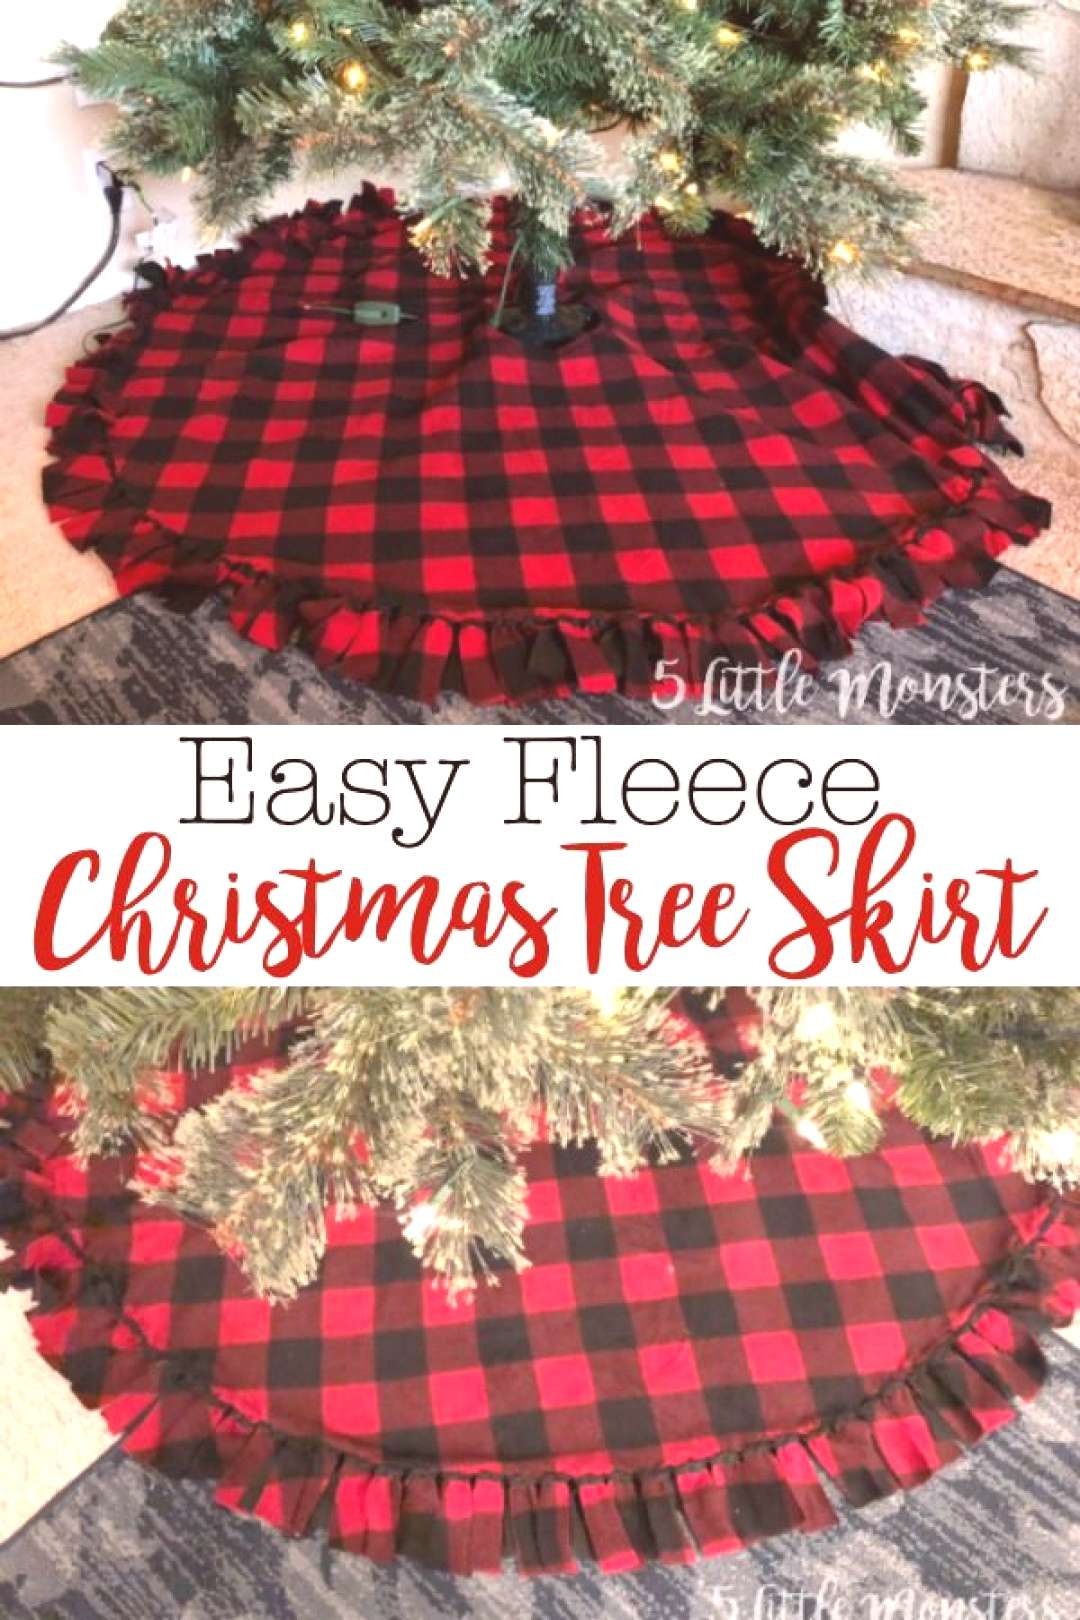 Fleece Christmas tree skirt made with 2 layers of fleece tied around the edge with a velcro closure